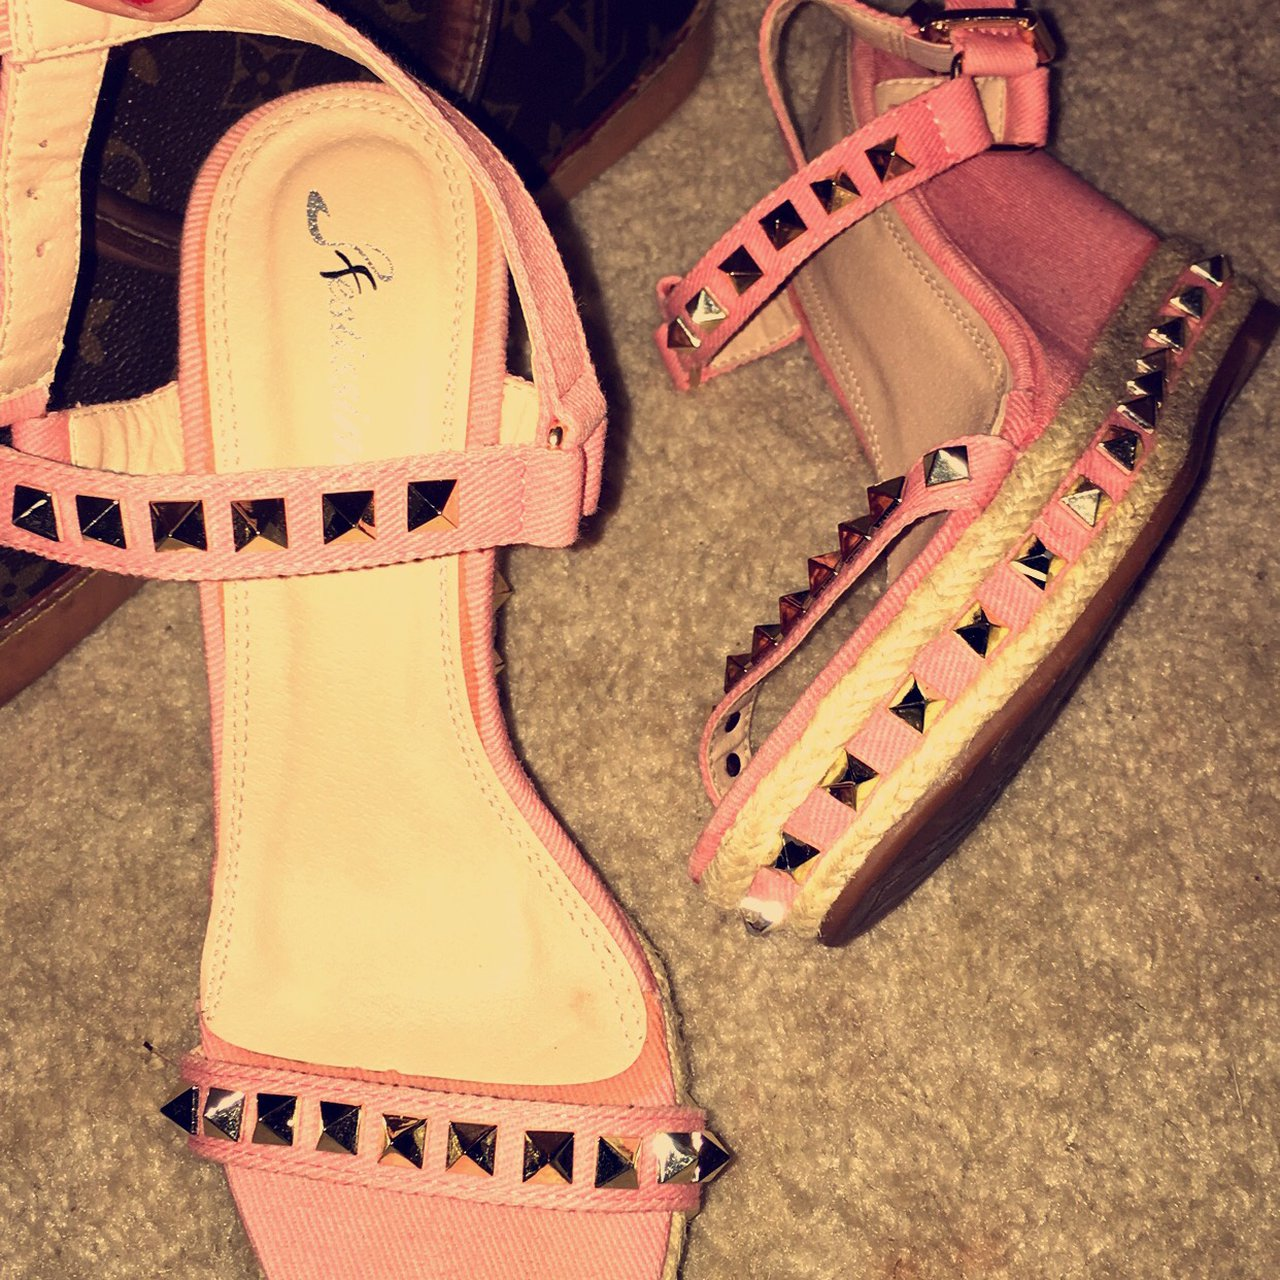 d15b2d9724a4 REDUCEDDDDD !! Baby Pink Valentino and gold stud Wedges 🍼 - Depop